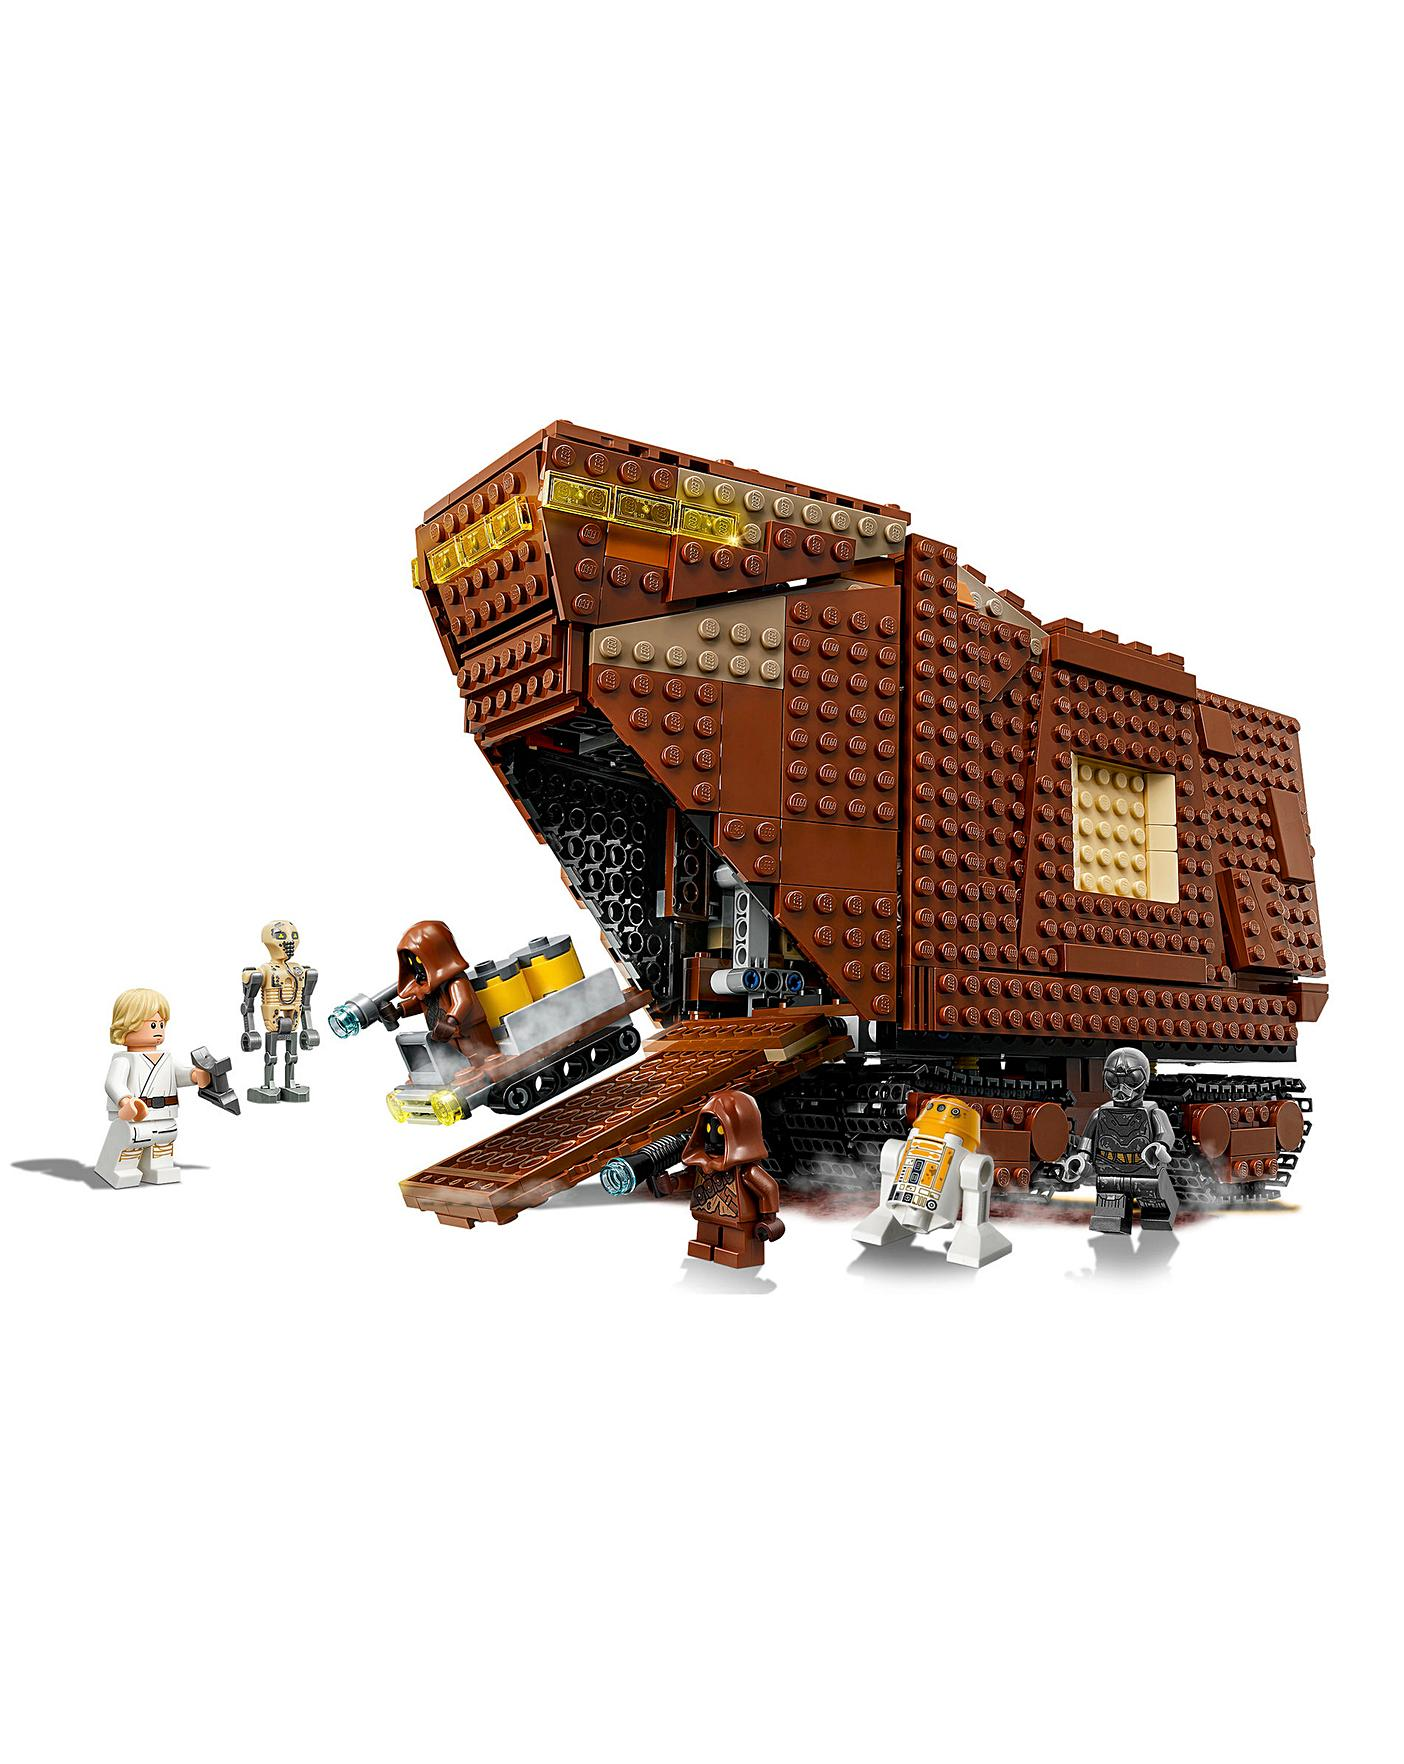 LEGO® Star Wars Astromech Droid R5-A2 from 75220 Sandcrawler